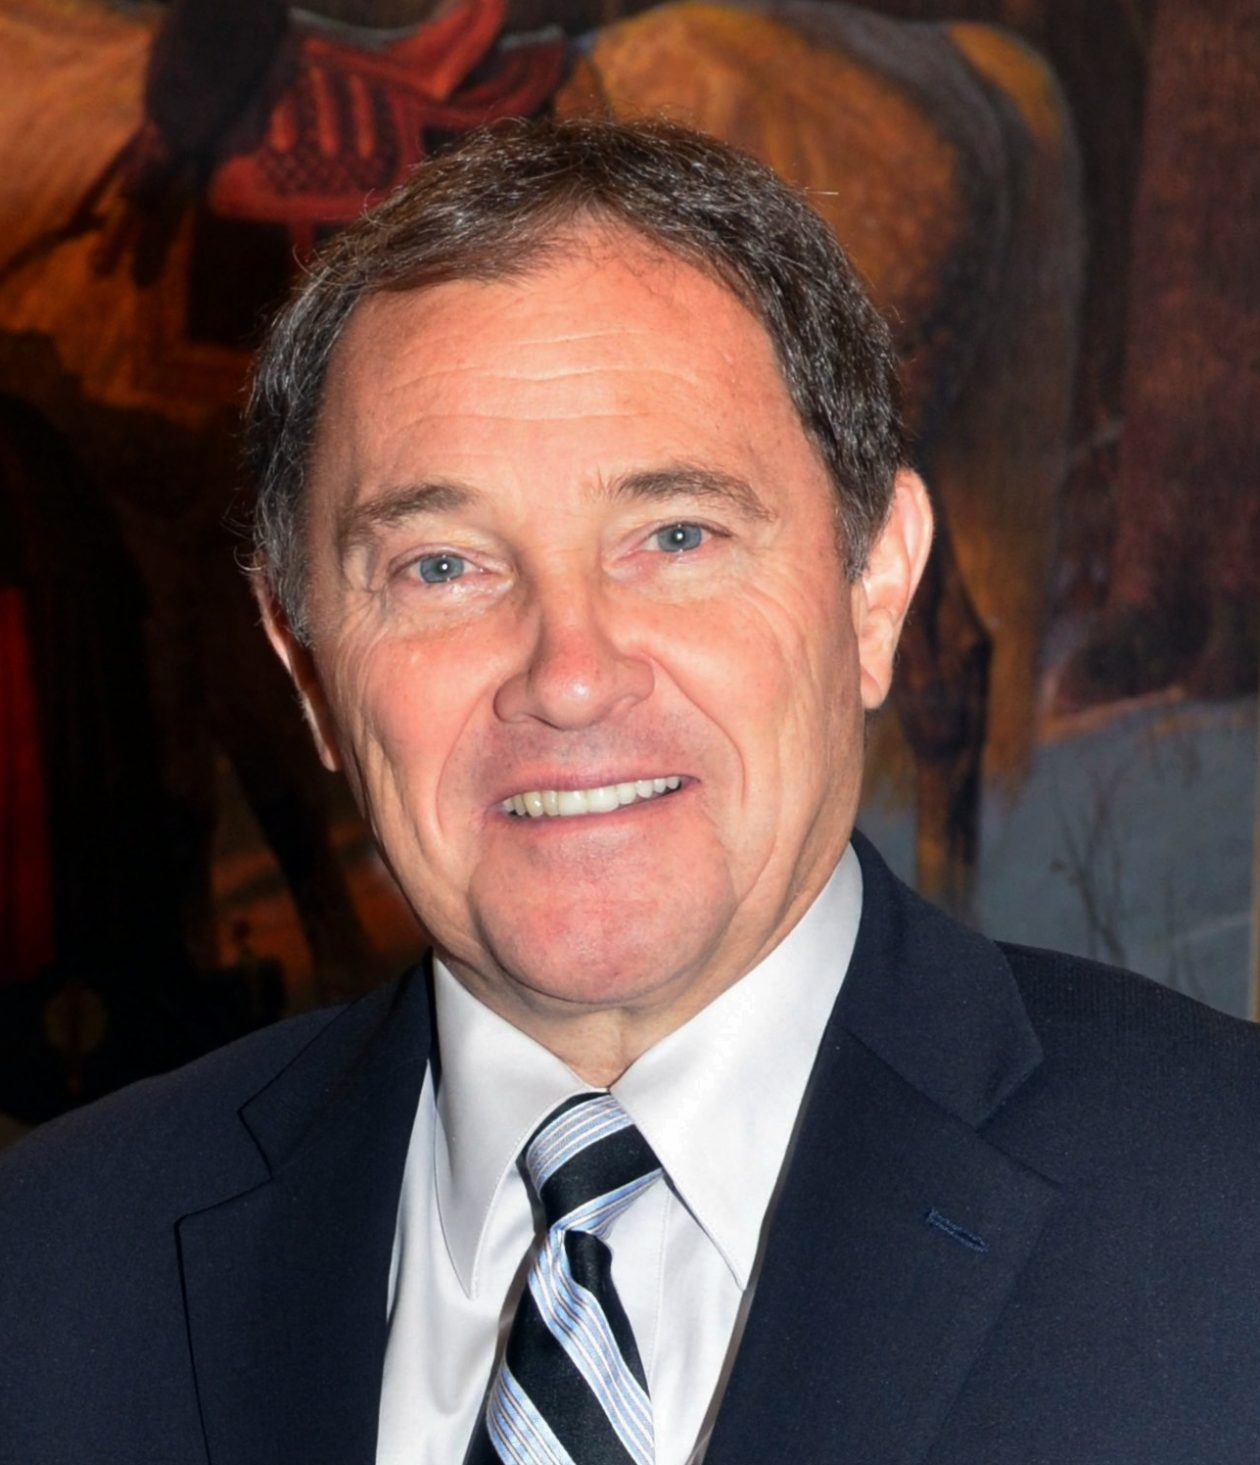 Gary Herbert, Porn Is Not The Public Health Crisis You're Seeking